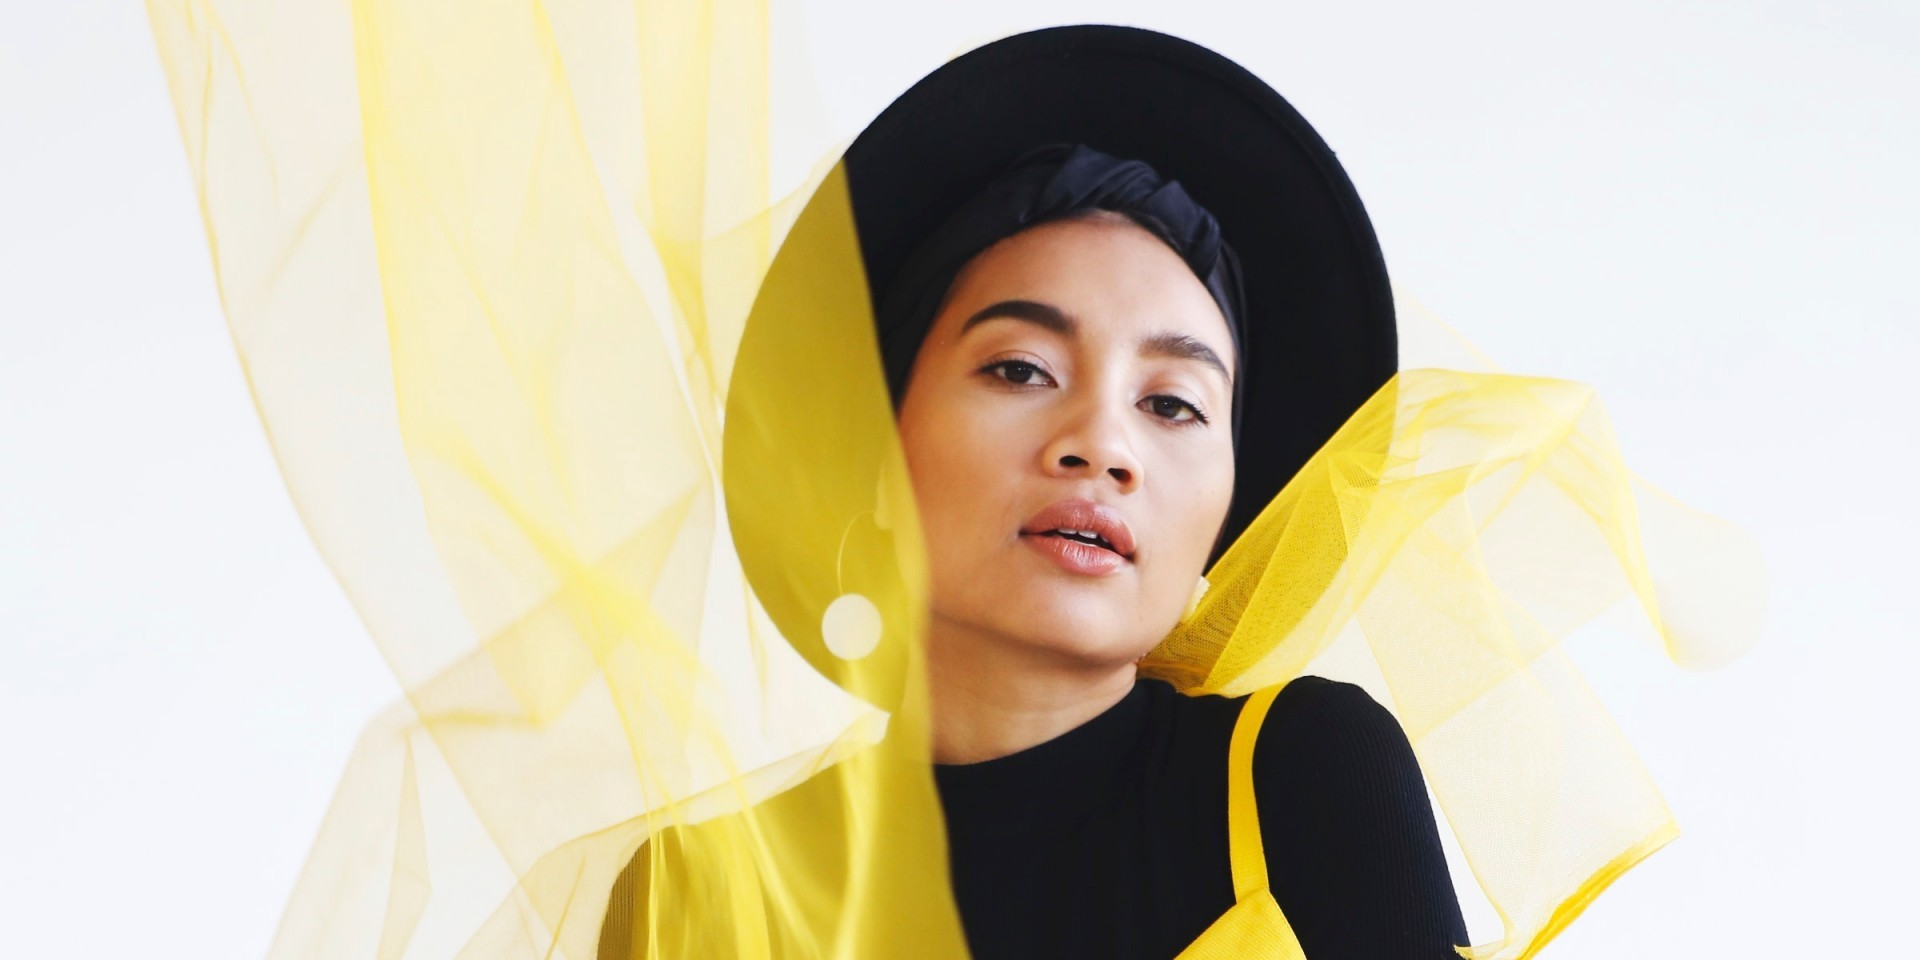 """""""I'm definitely going to whip out something cool and new for this set"""": Yuna speaks on her Neon Lights return"""